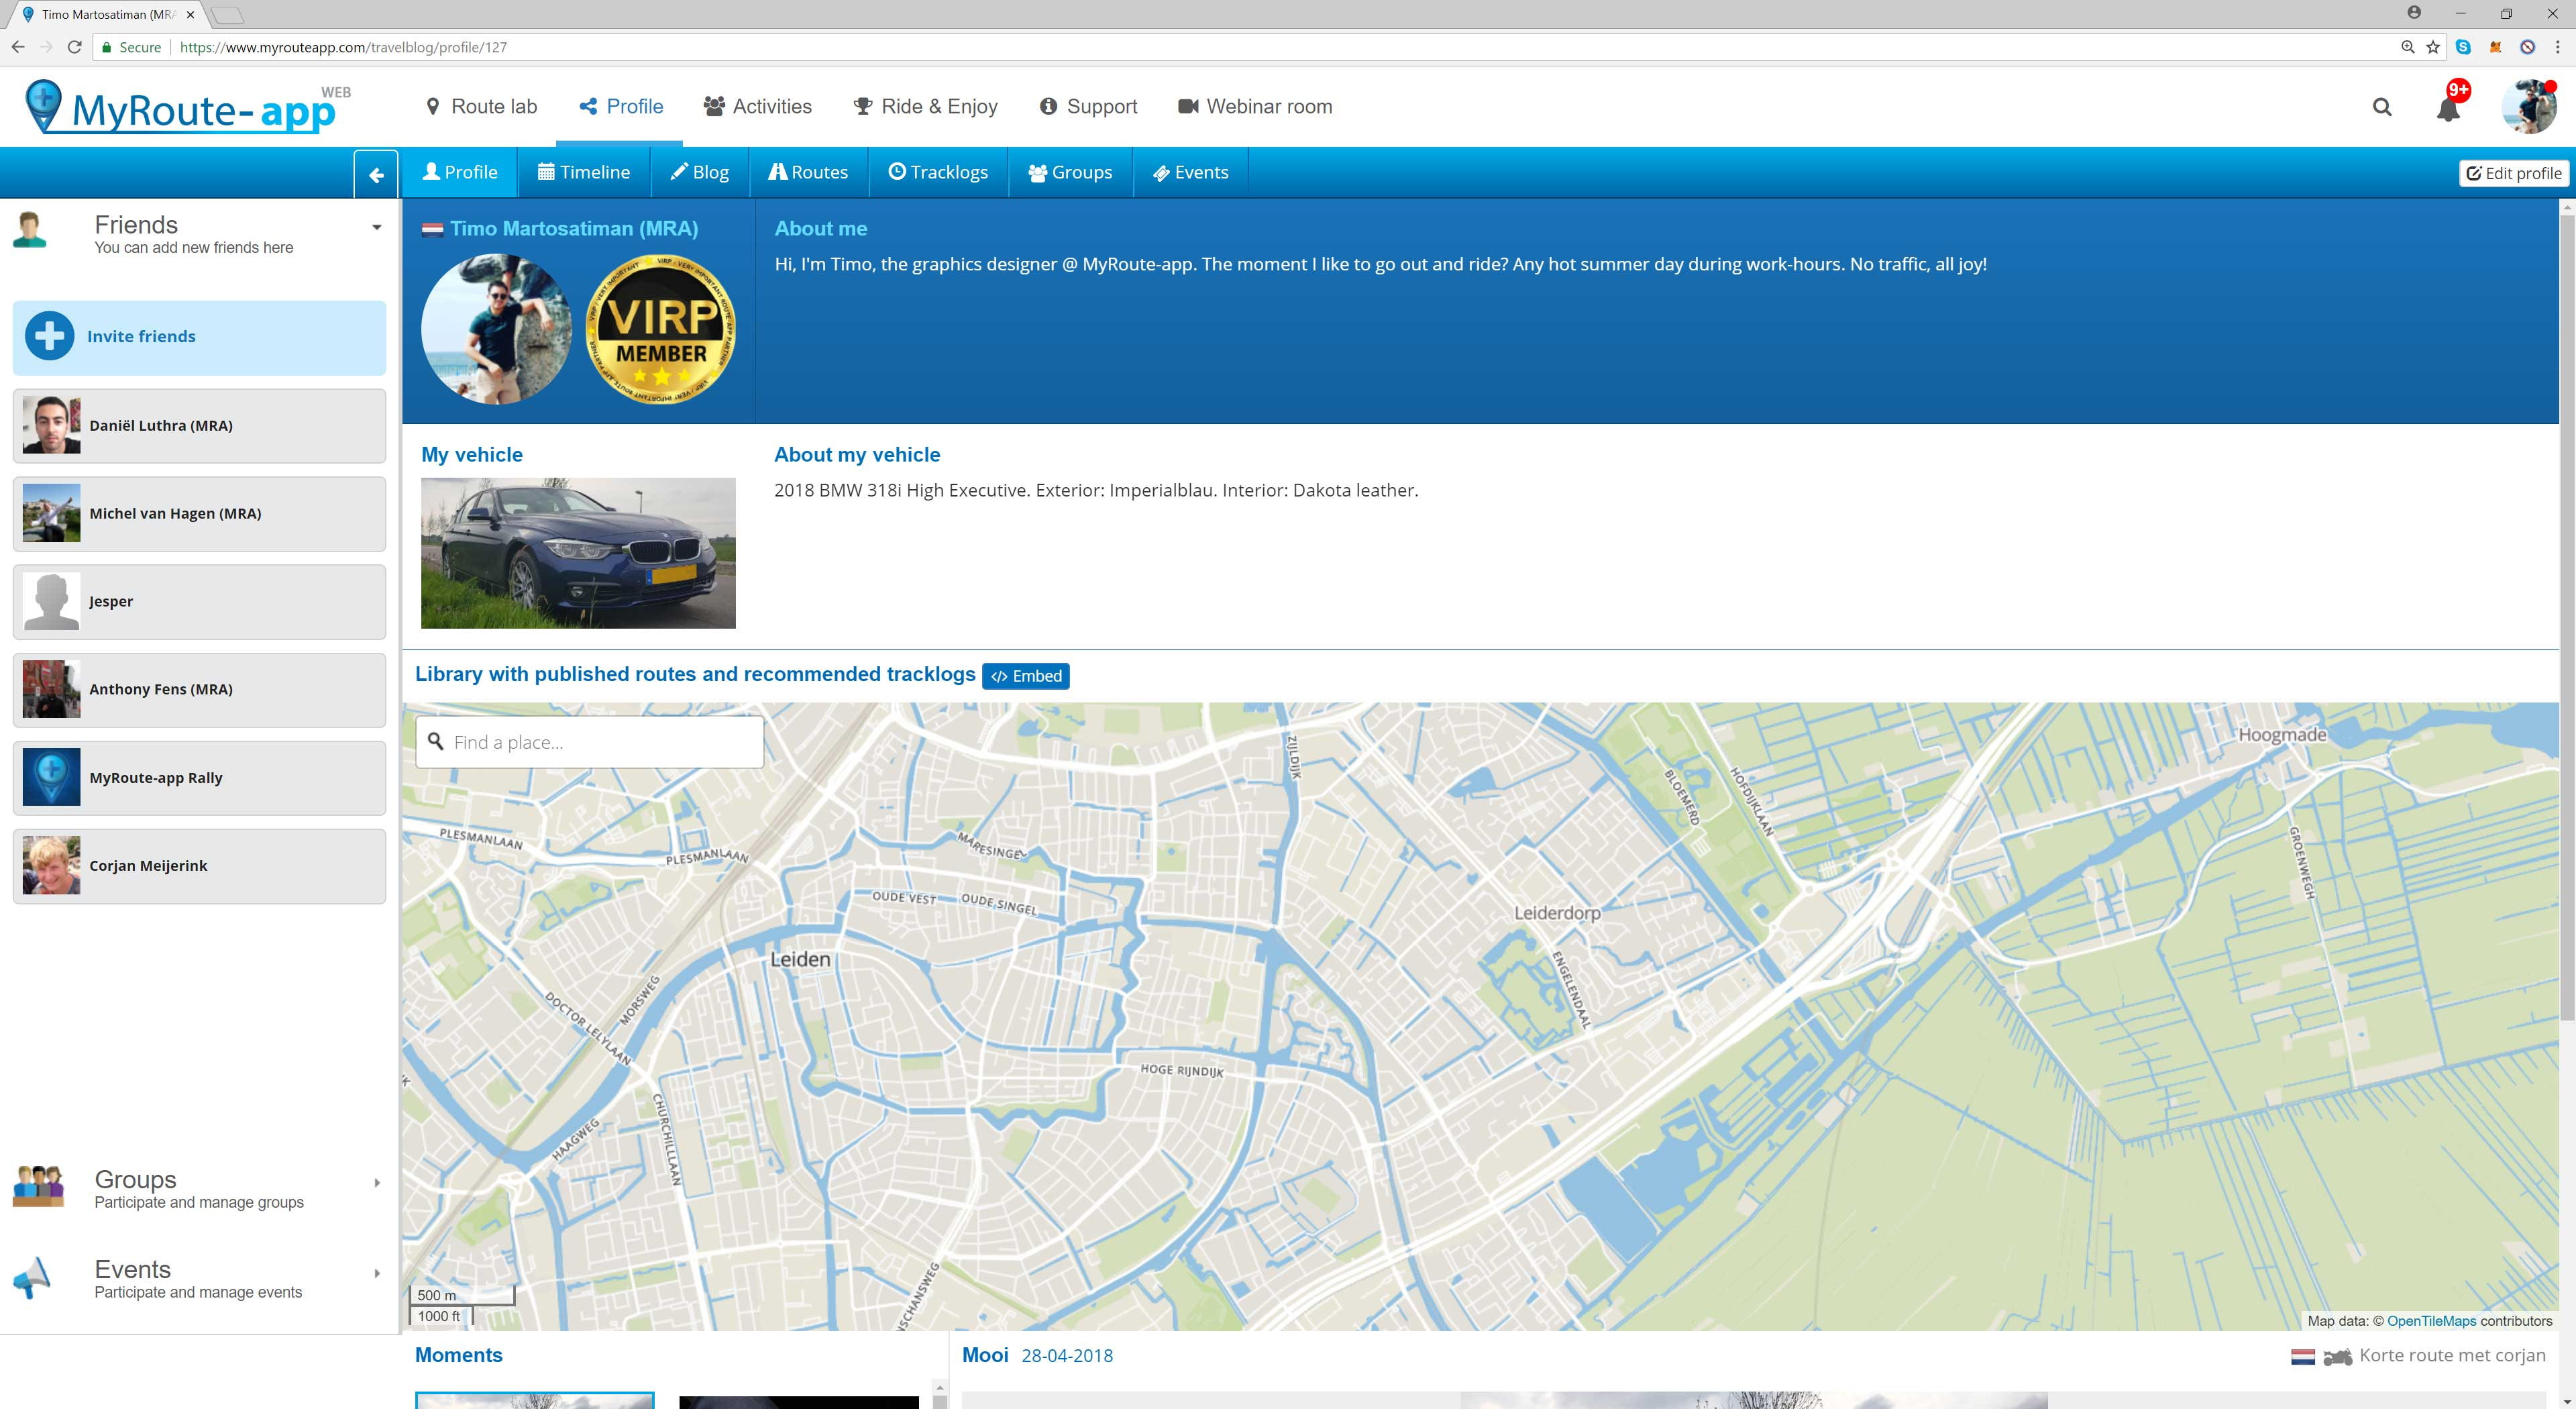 MyRoute-app all-in-one – MyRoute-app: The #1 all-in-one route tool